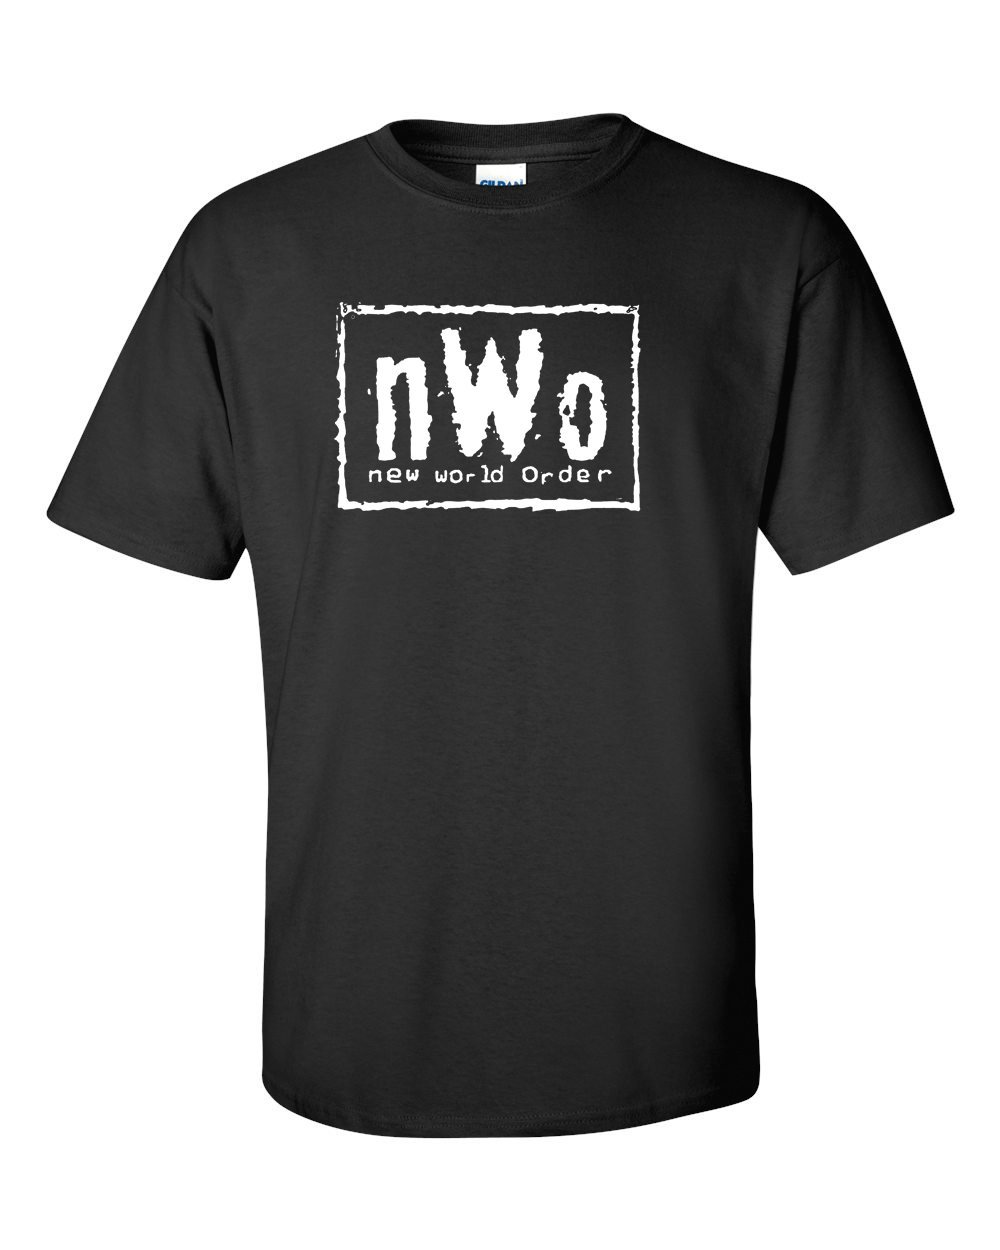 New World Order-T-Shirt-nWo-WCW logo-Professional-Wrestling-Size-S-3XL (2X) by Generic